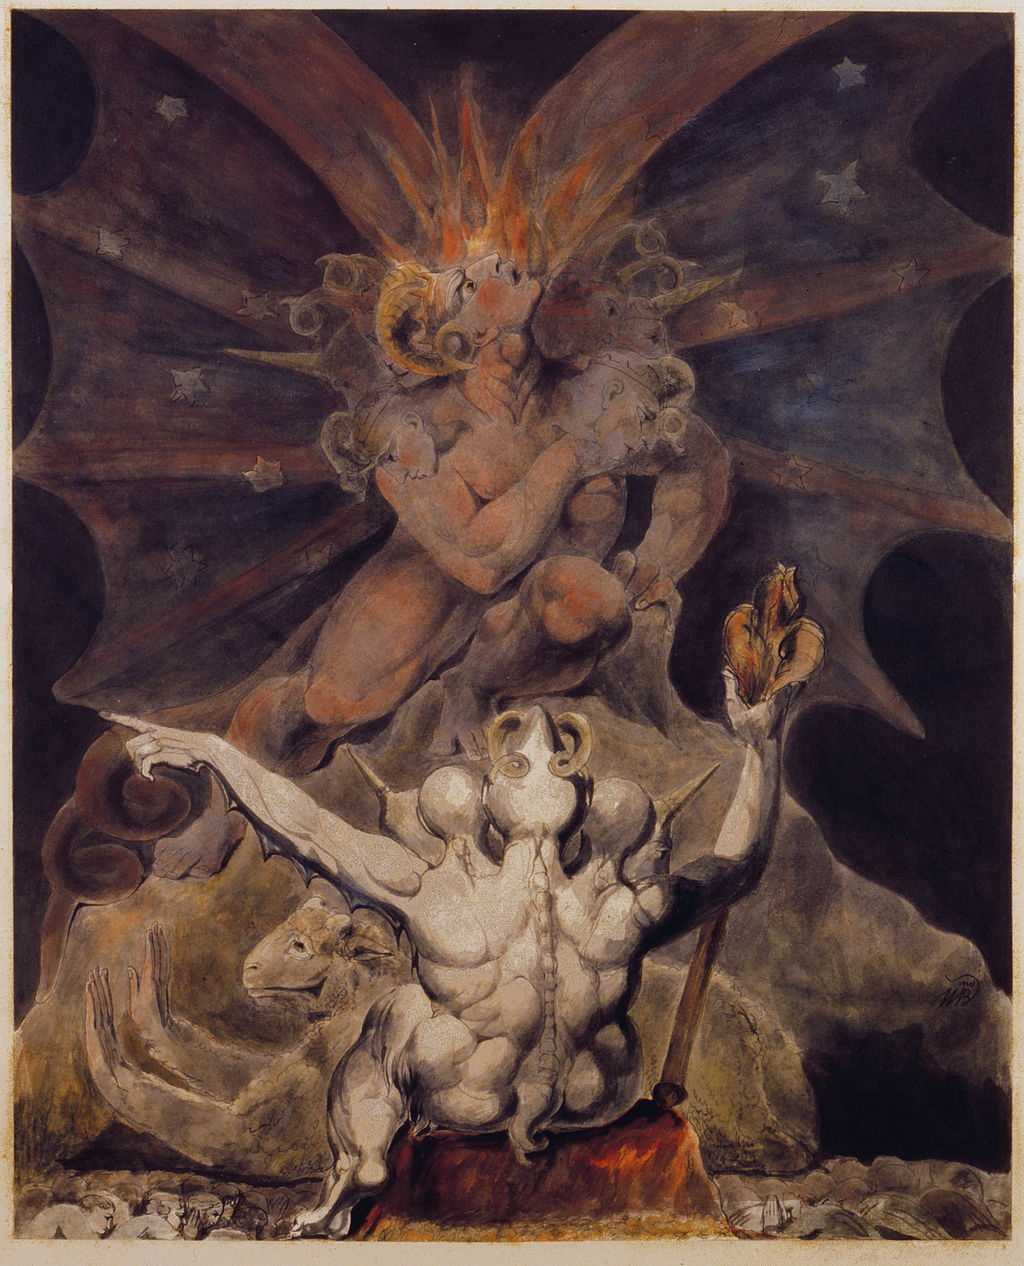 William Blake, The Number of the Beast is 666  (early 1800s). Maybe a bitweird.  Elijah Goldsmith's dreams  had nothing on WilliamBlake's.